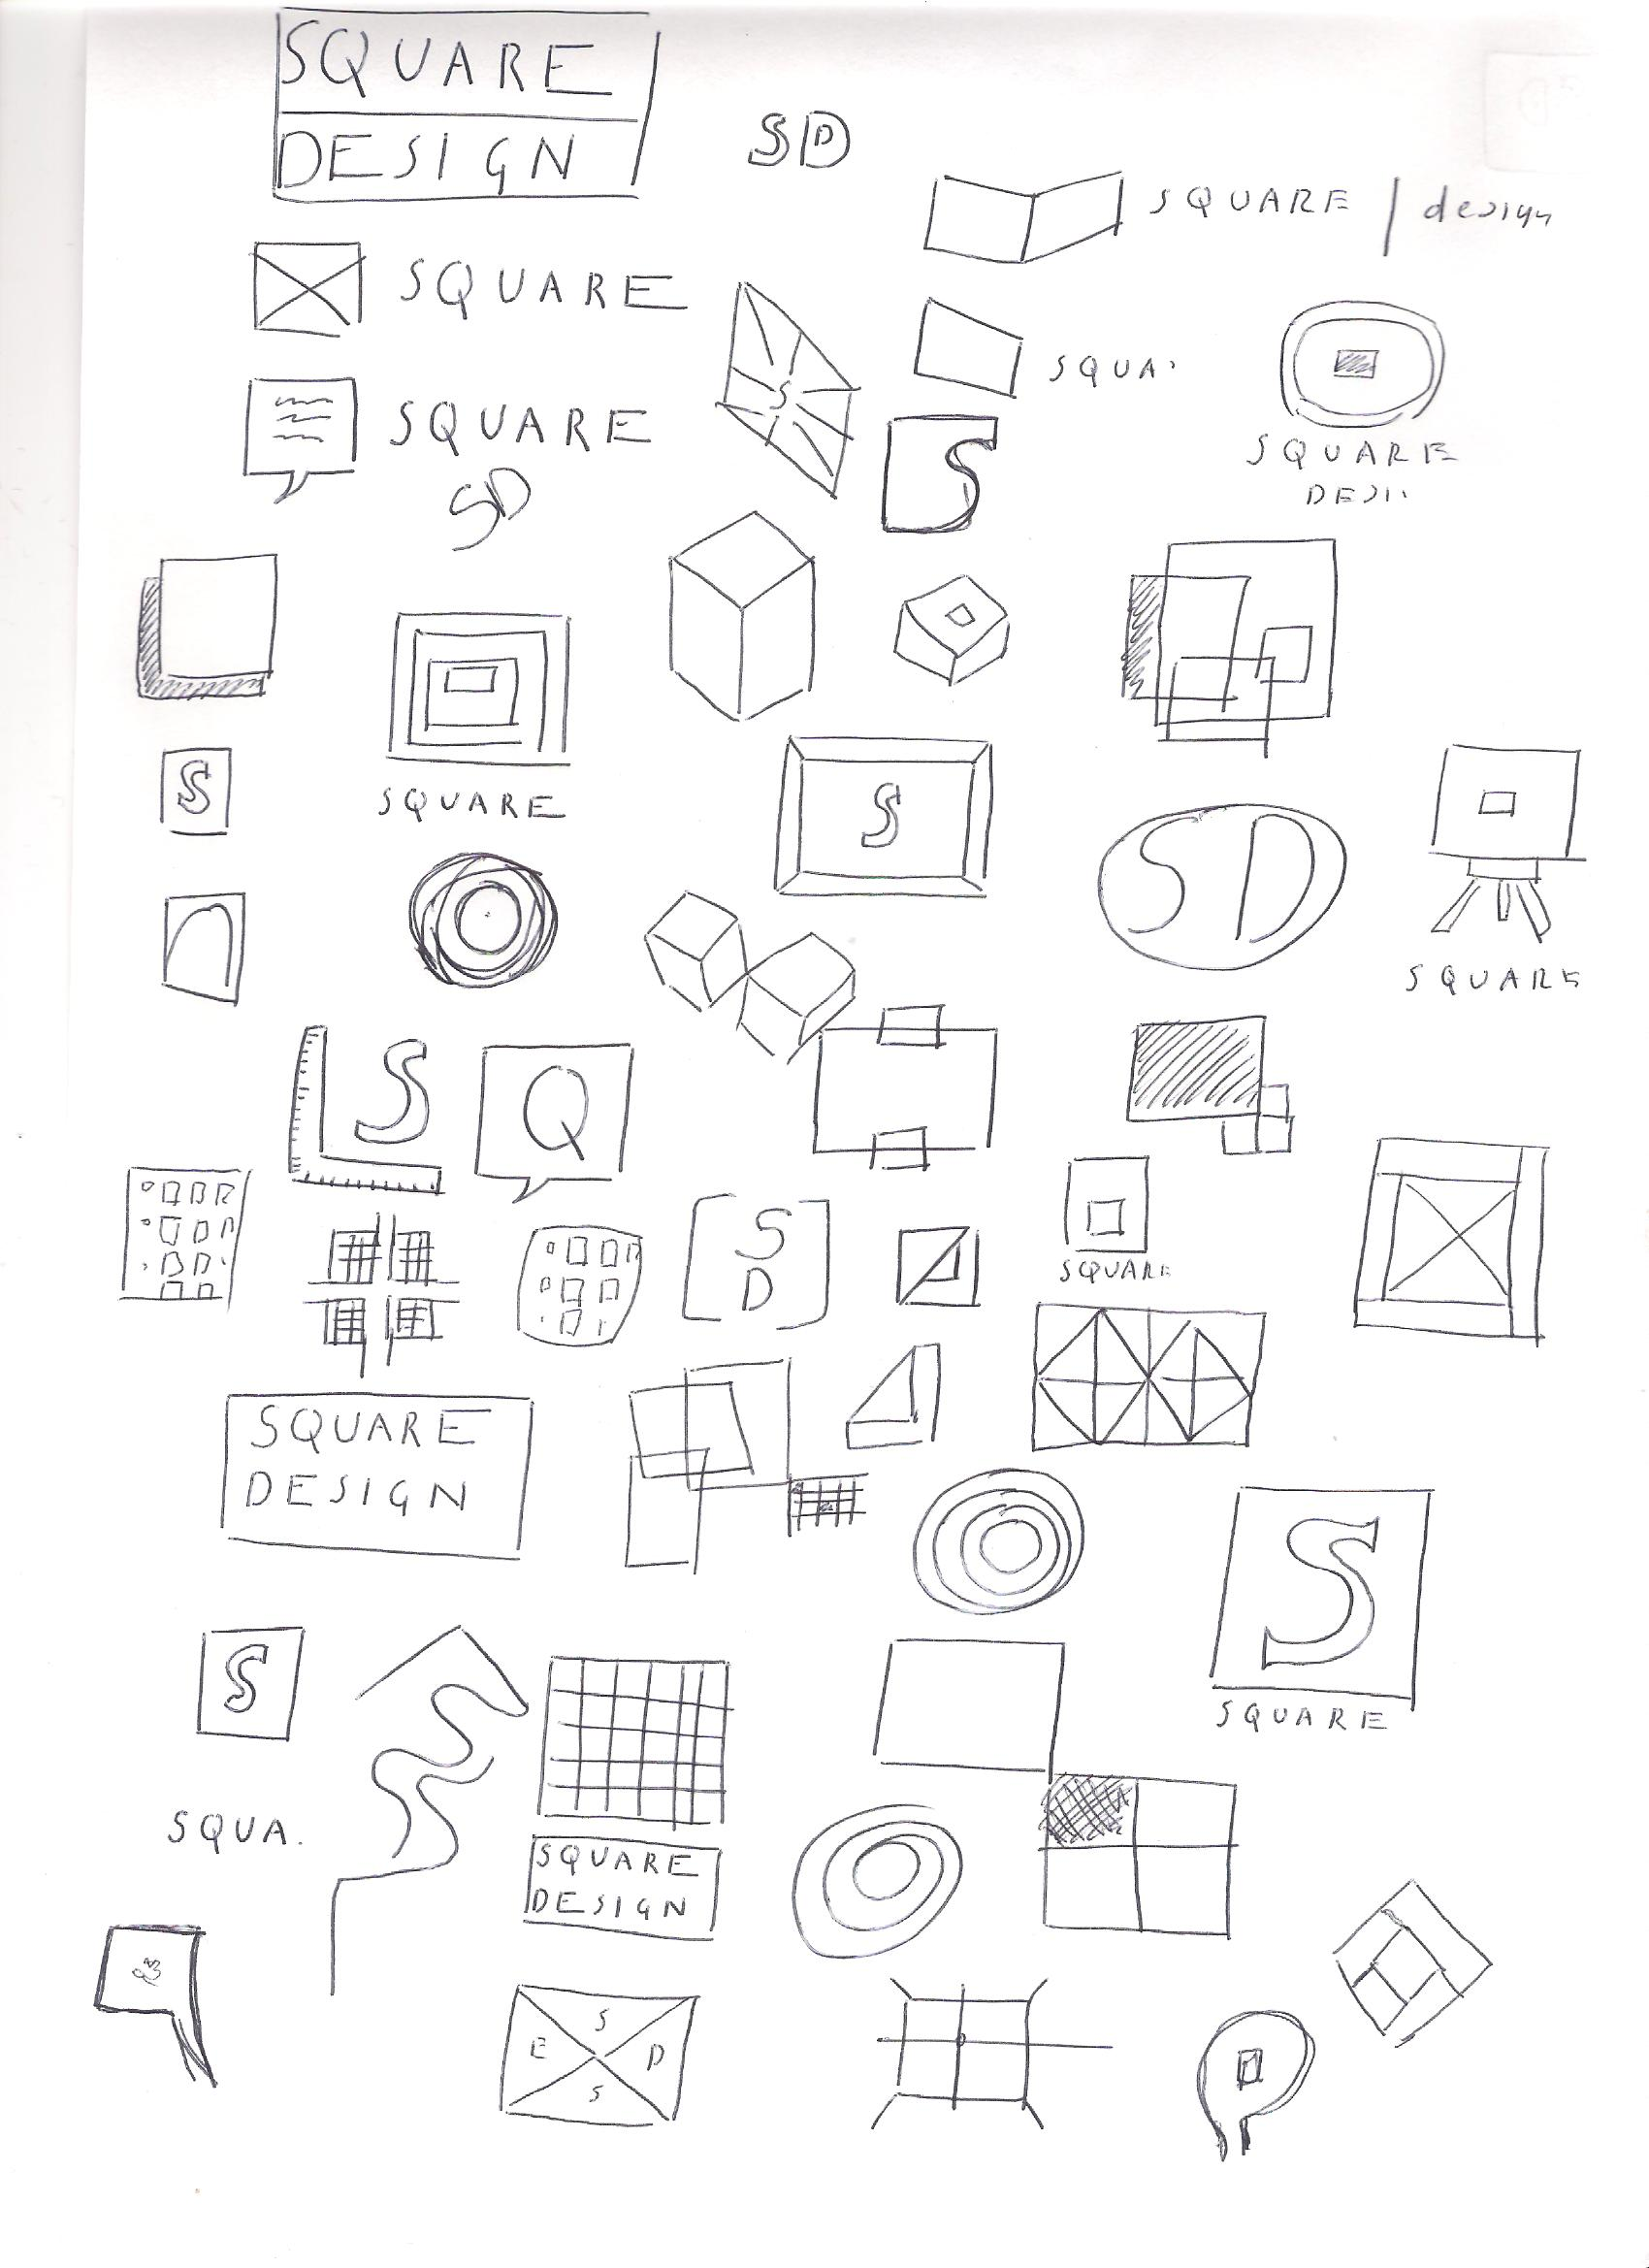 Square Design (Mood Boards)  - image 10 - student project